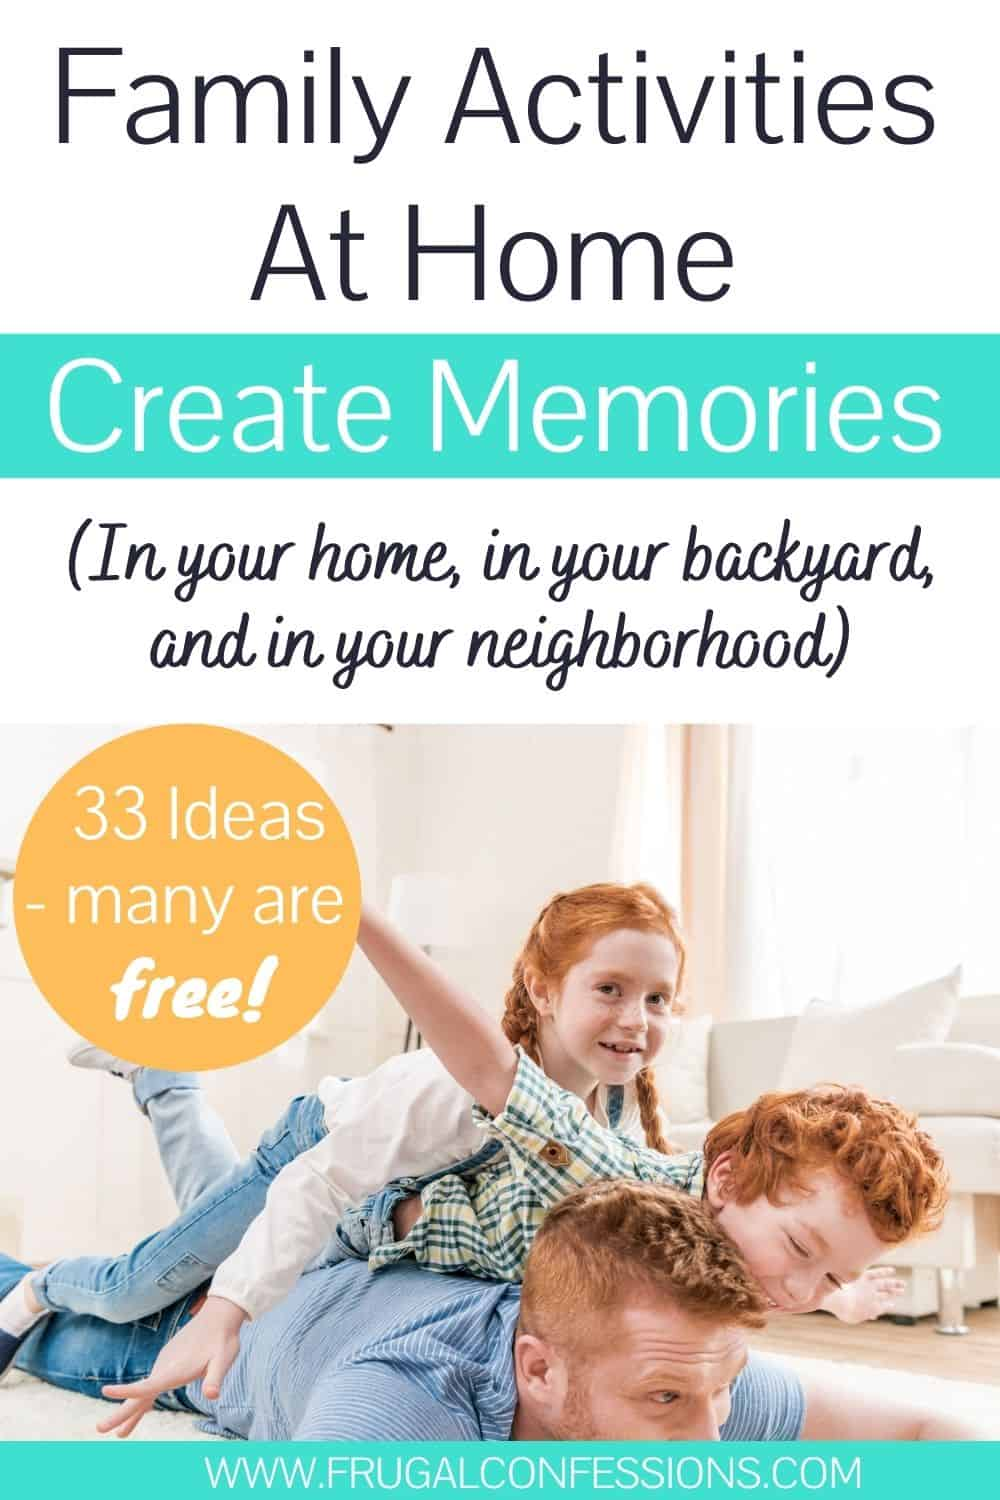 """family with father and kids on the ground playing airplane, text overlay """"family activities at home create memories - 33 ideas, many are free"""""""